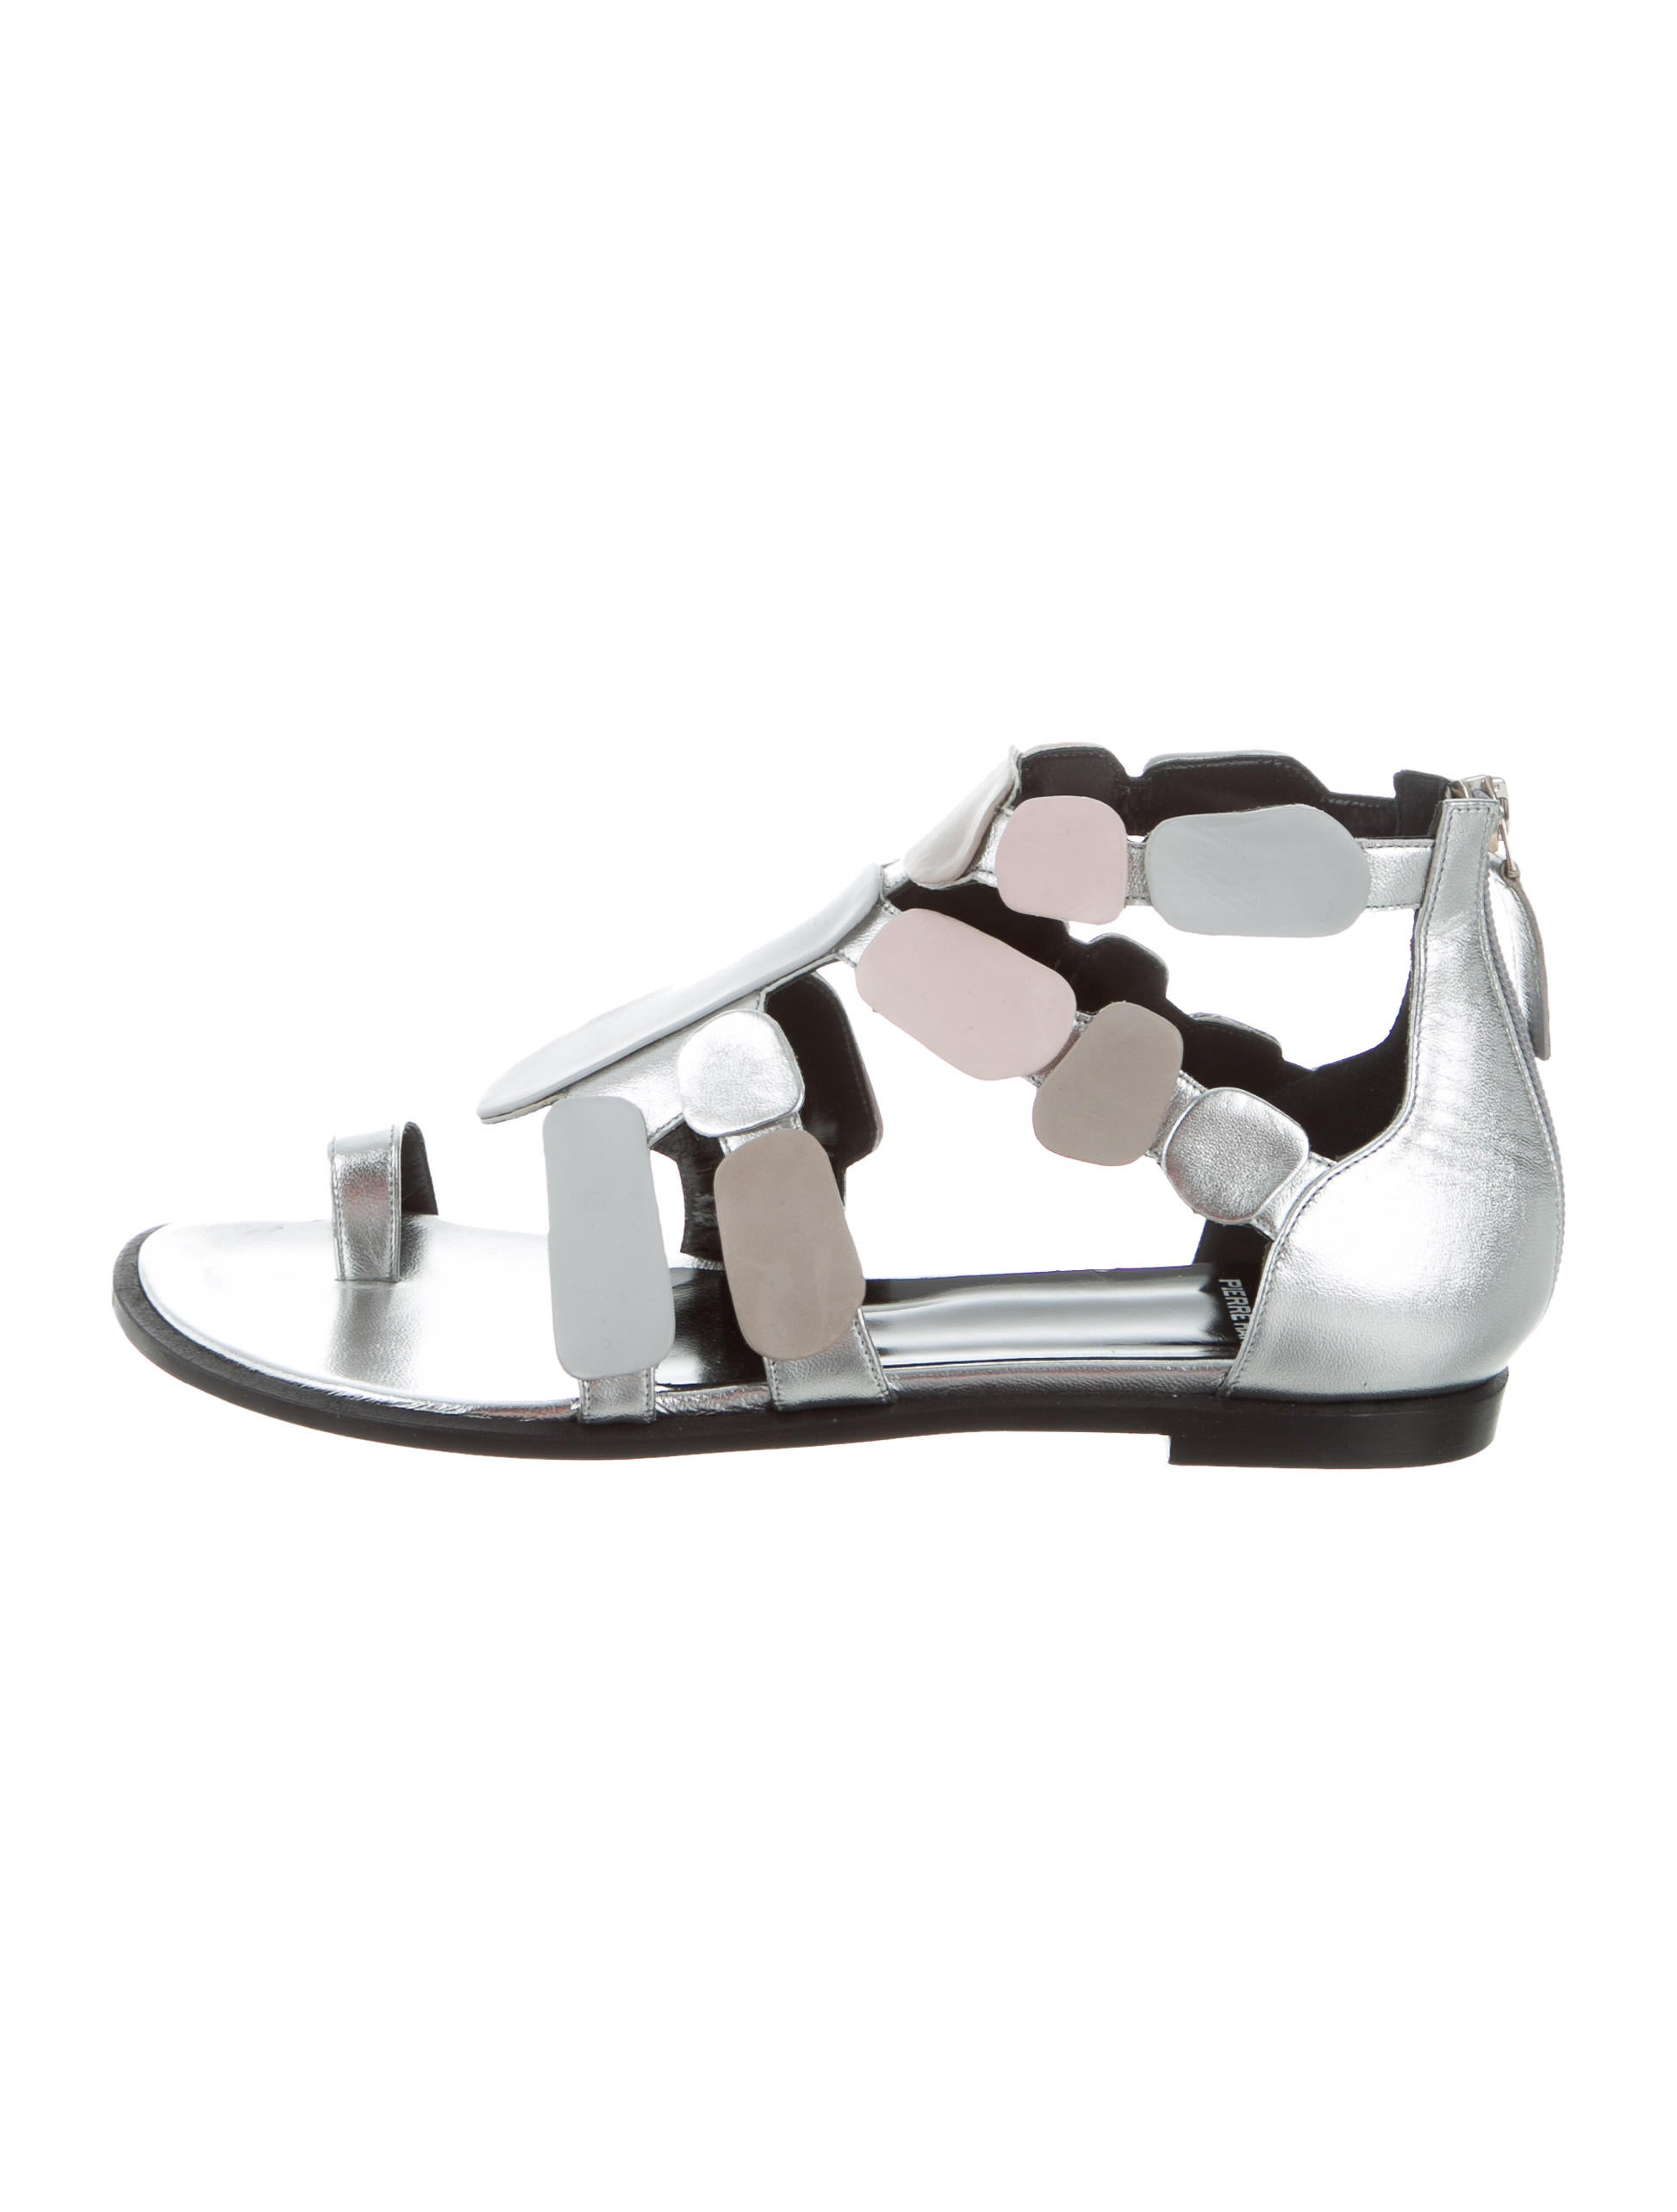 Pierre Hardy Leather Stones Sandals w/ Tags discount sast clearance geniue stockist outlet cheap authentic for nice cheap online RfE5h0SvF